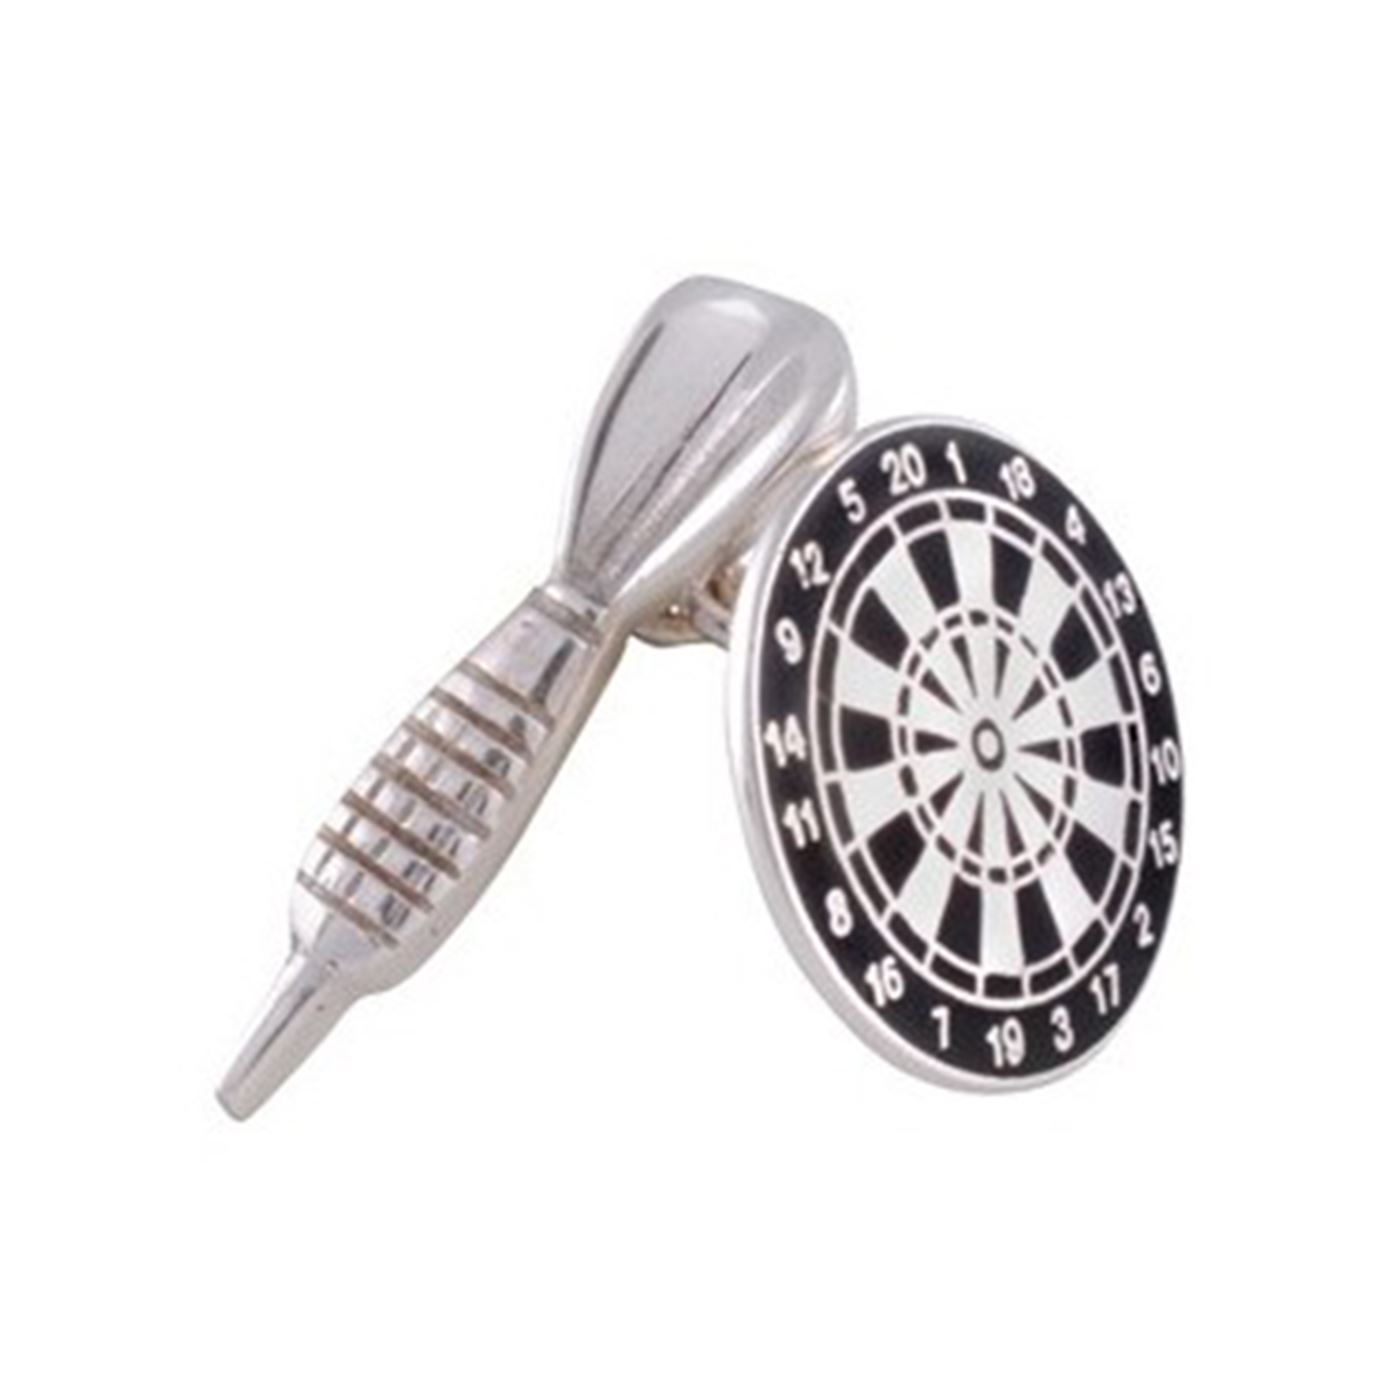 b8c3126f533b Sterling Silver Black Enamel Dart and Dartboard Cufflinks – The Tie ...